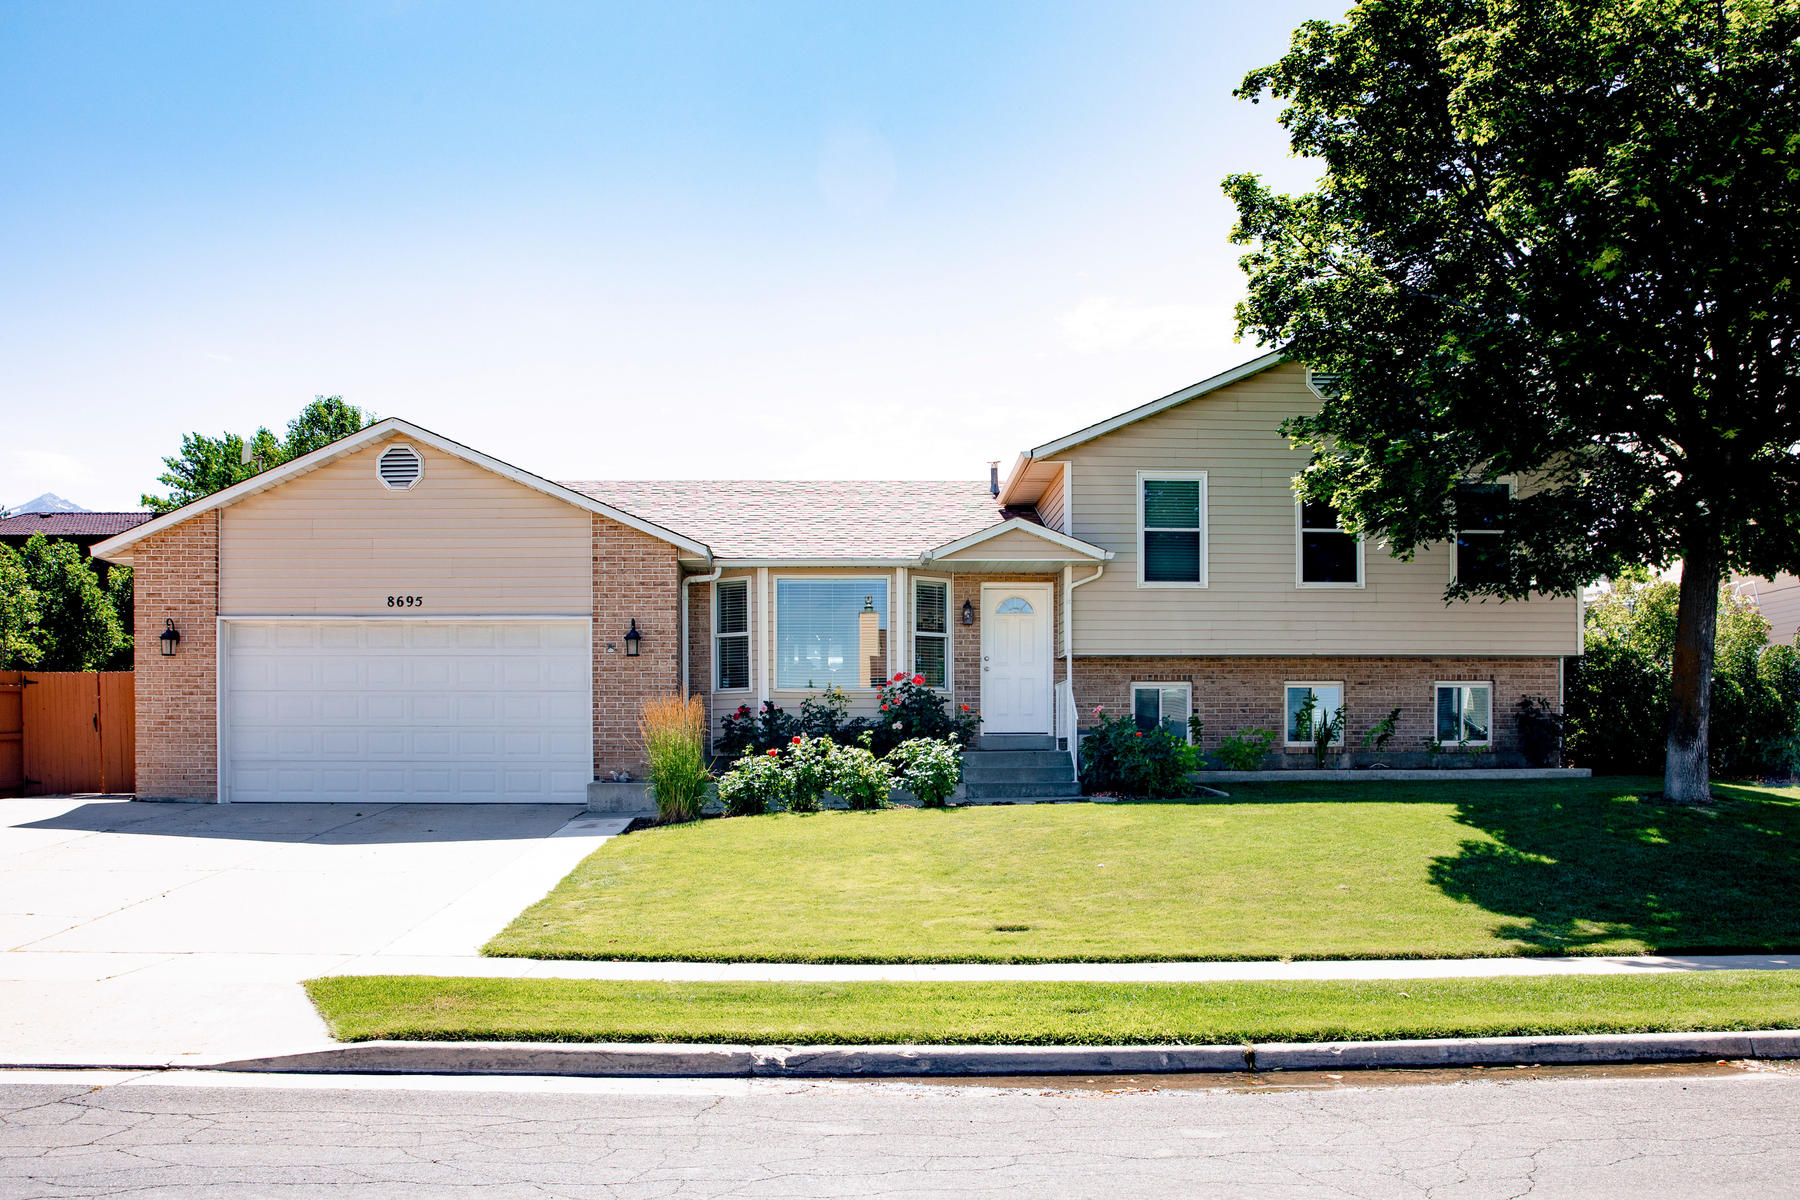 Single Family Homes for Active at Pride Of Ownership 8695 S Gravel Hills Dr Sandy, Utah 84094 United States